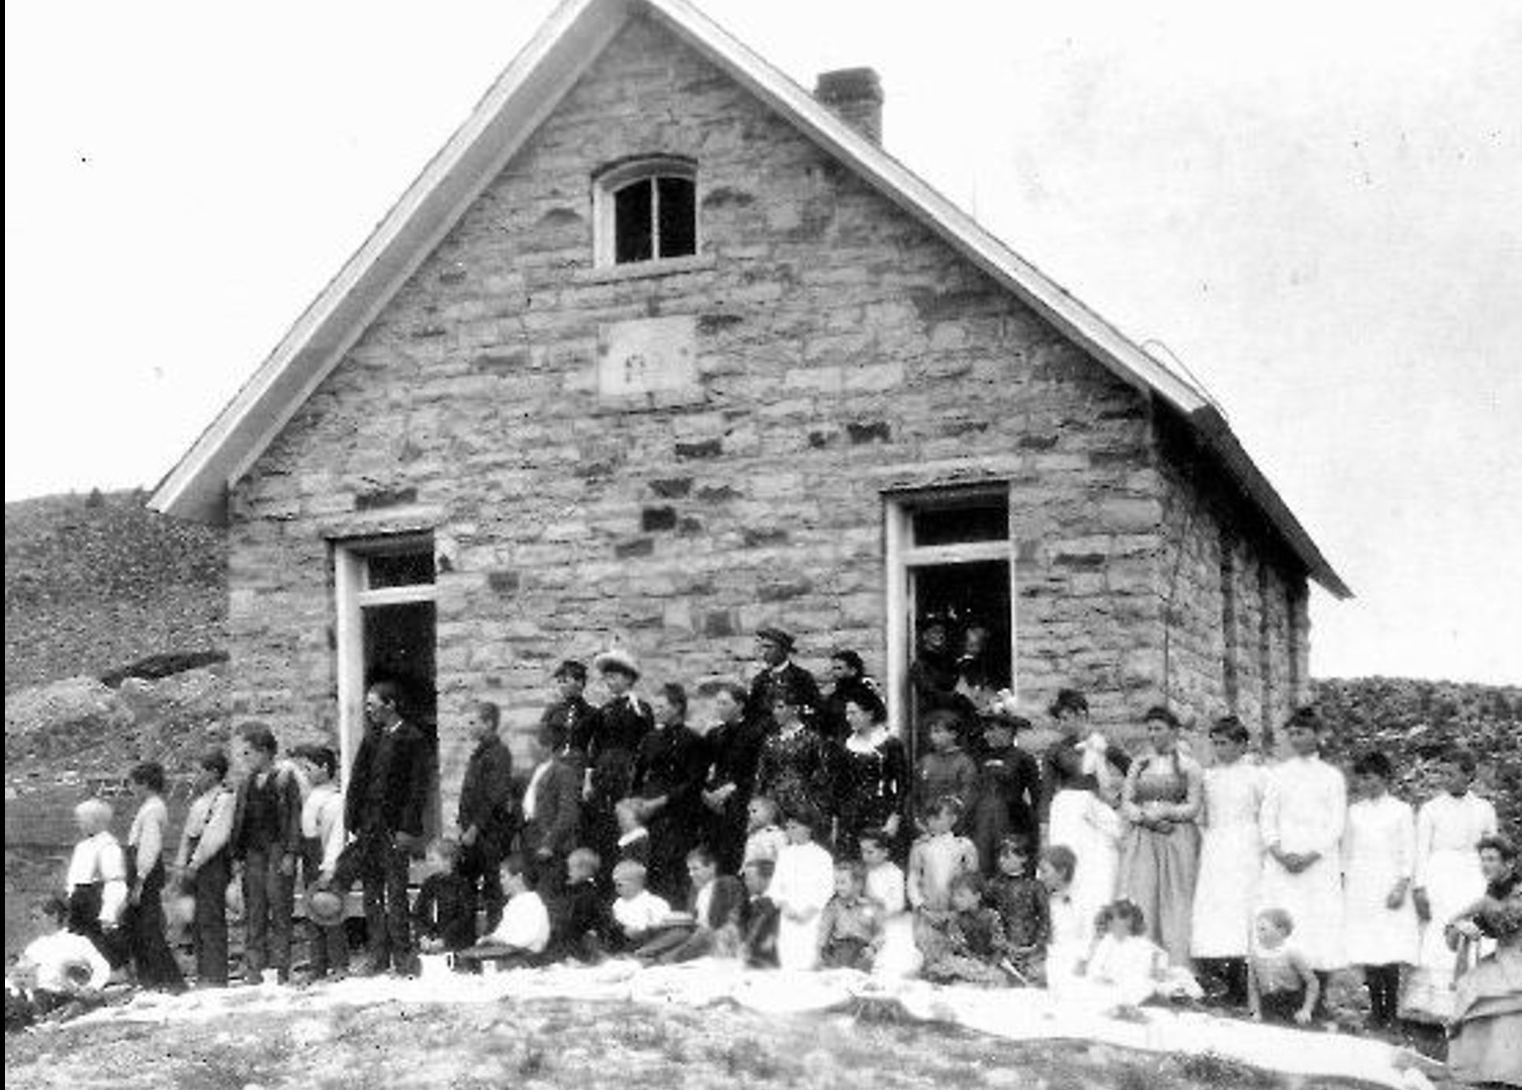 Highland School at Stout, 1889. (Courtesy of the Fort Collins Public Library)